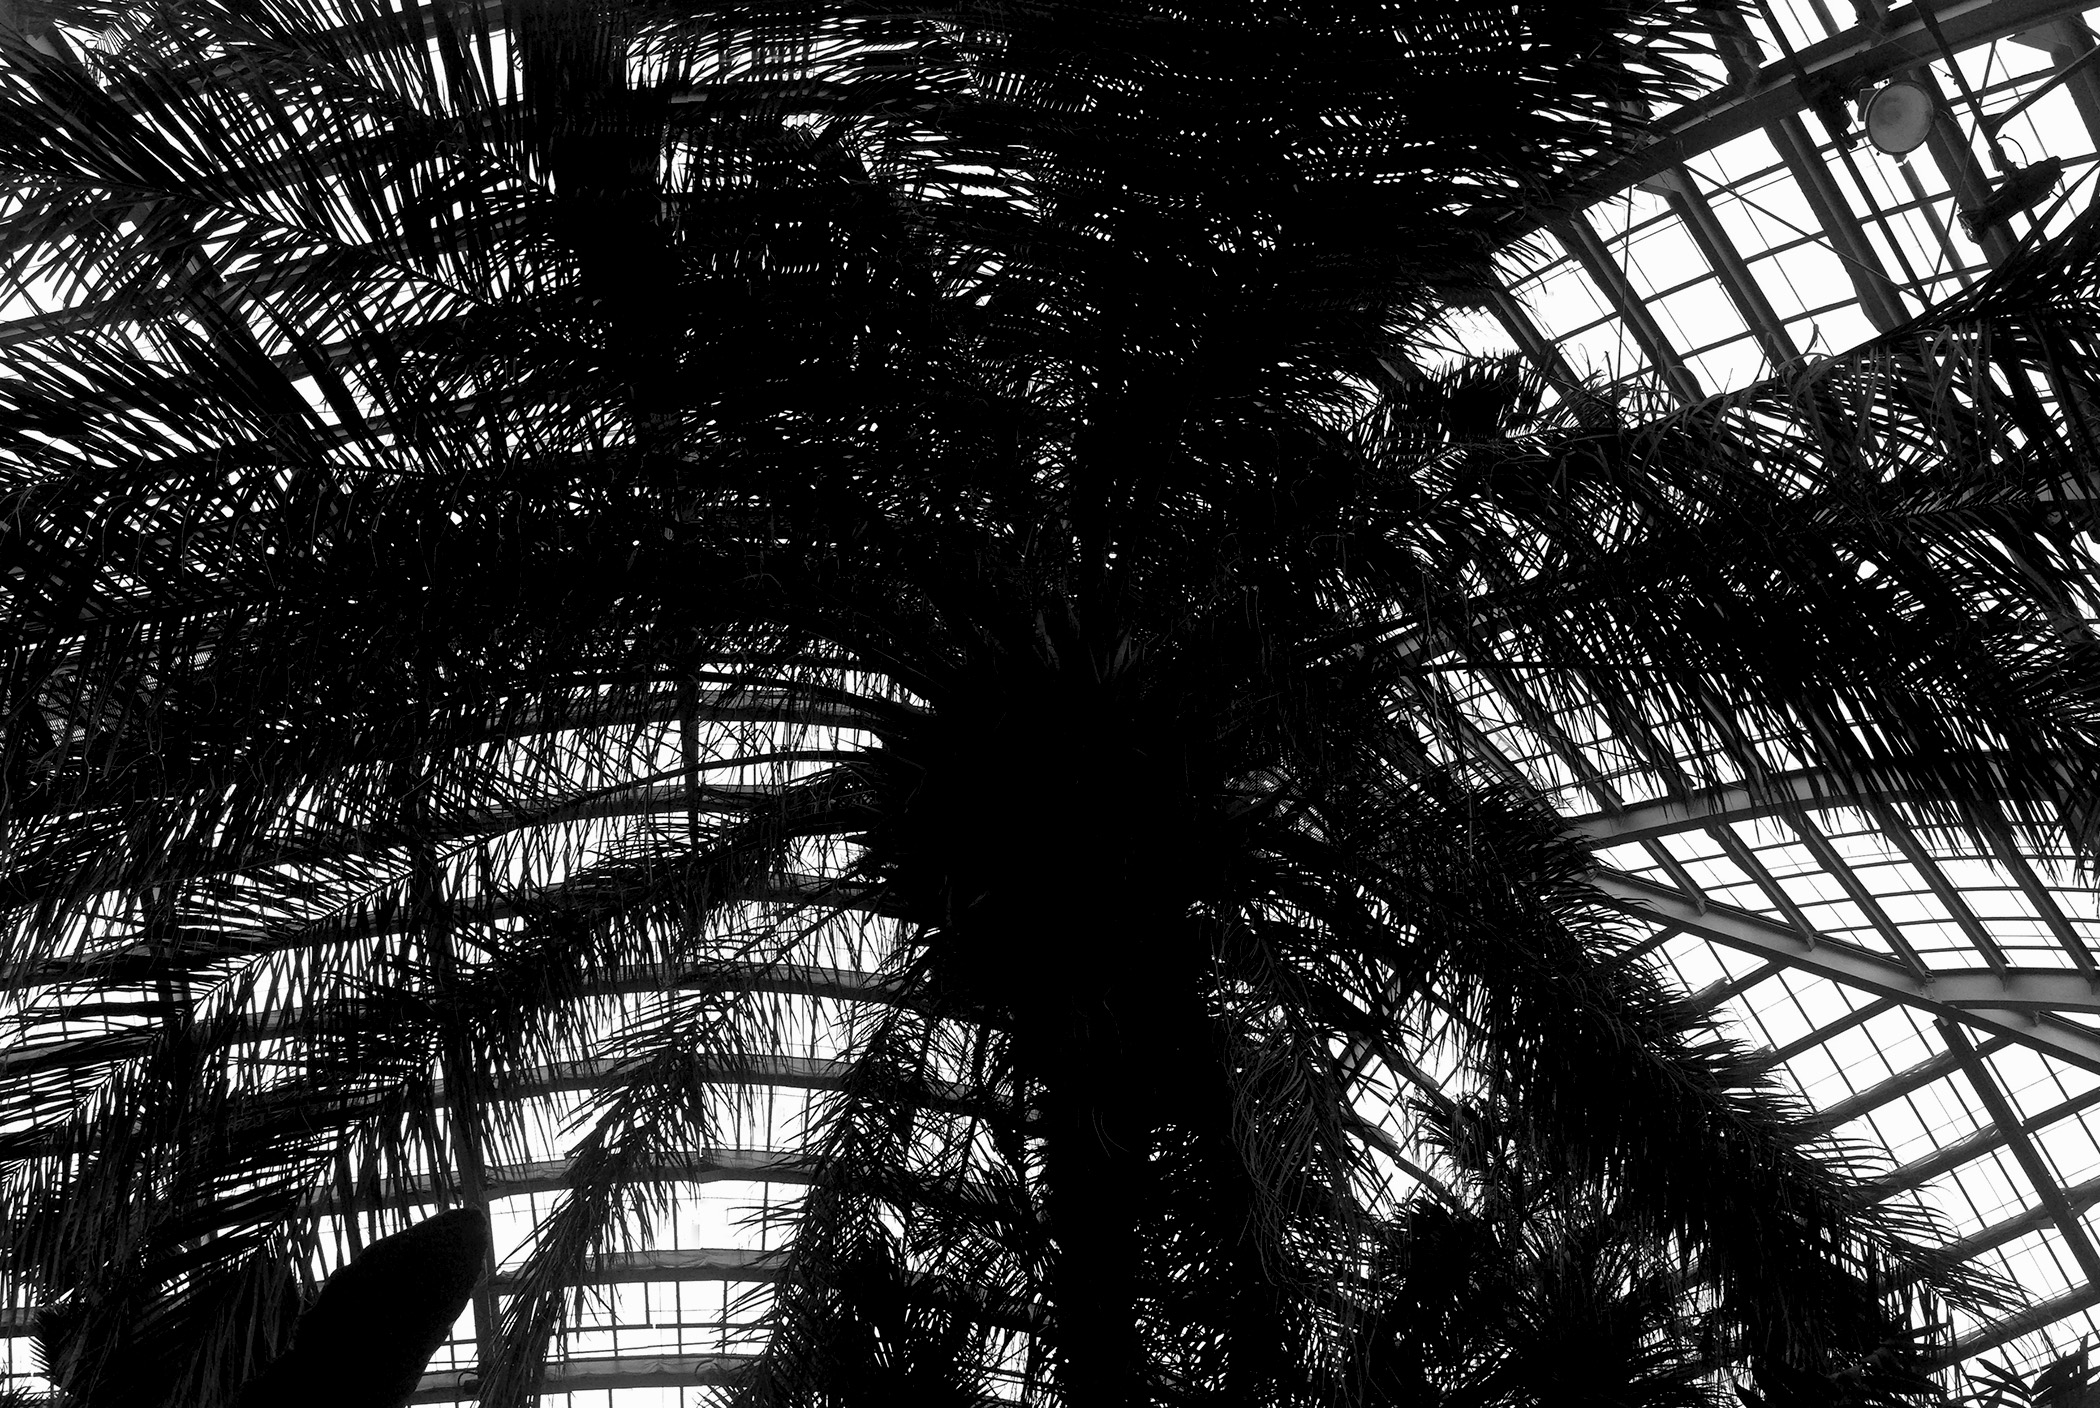 Scheelea Palm (oldest palm in the Conservatory collection, grown from a seed in 1926), Palm room, Garfield Park Conservatory, Chicago Illinois